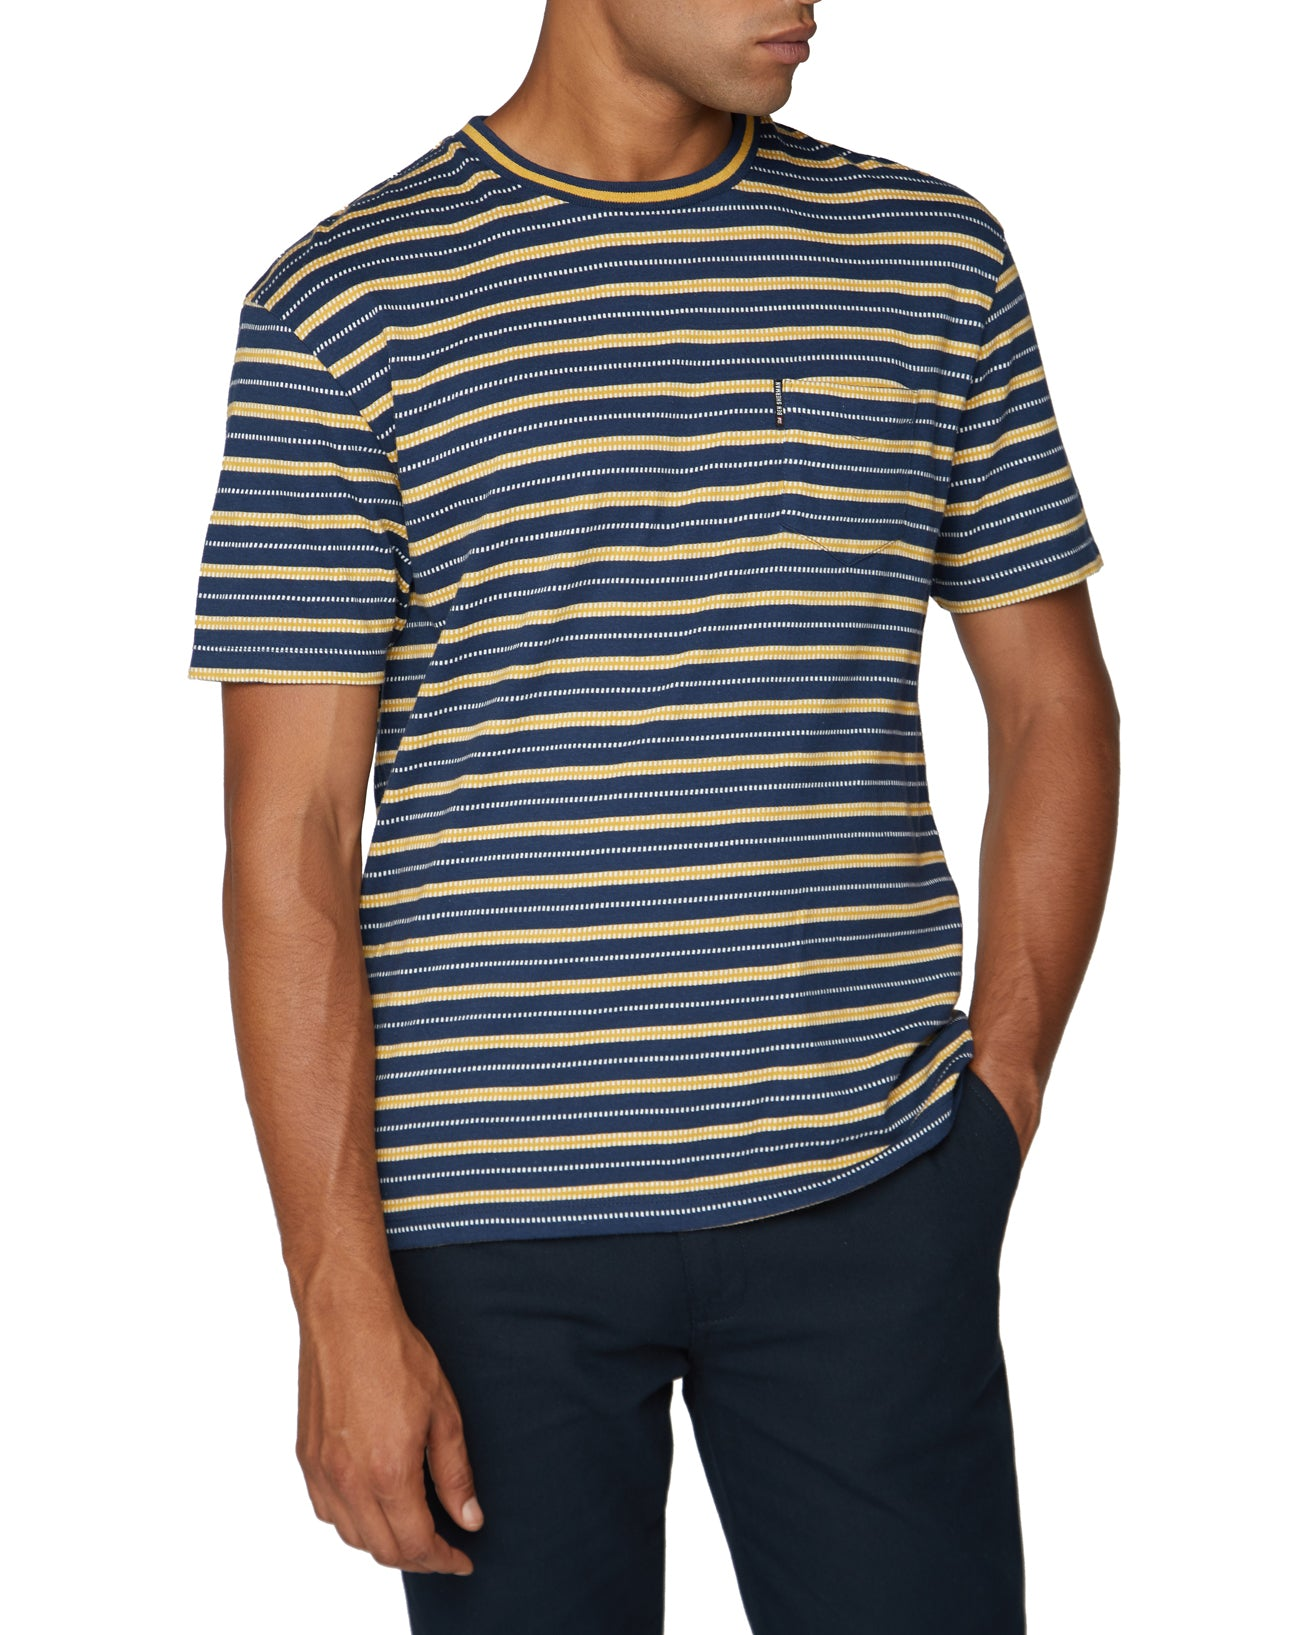 Retro Stripe Tee - Midnight